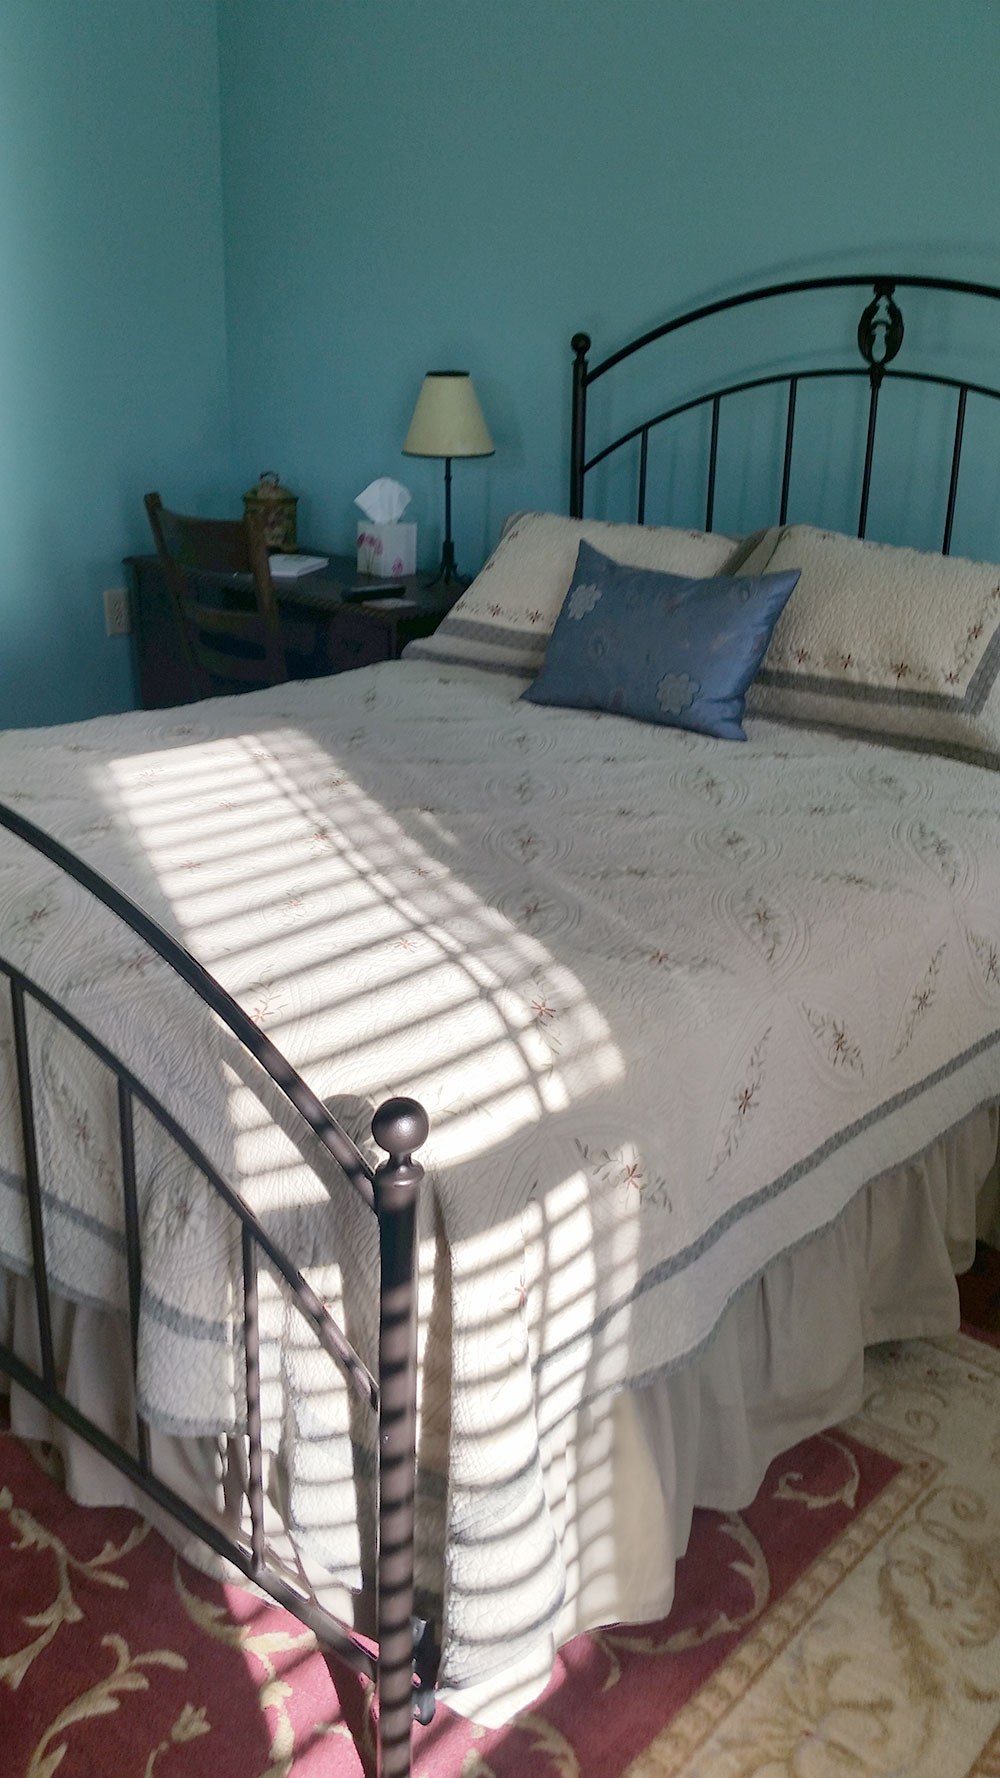 Katy Trail Bed and Breakfast - Jefferson Room - bed and nightstand